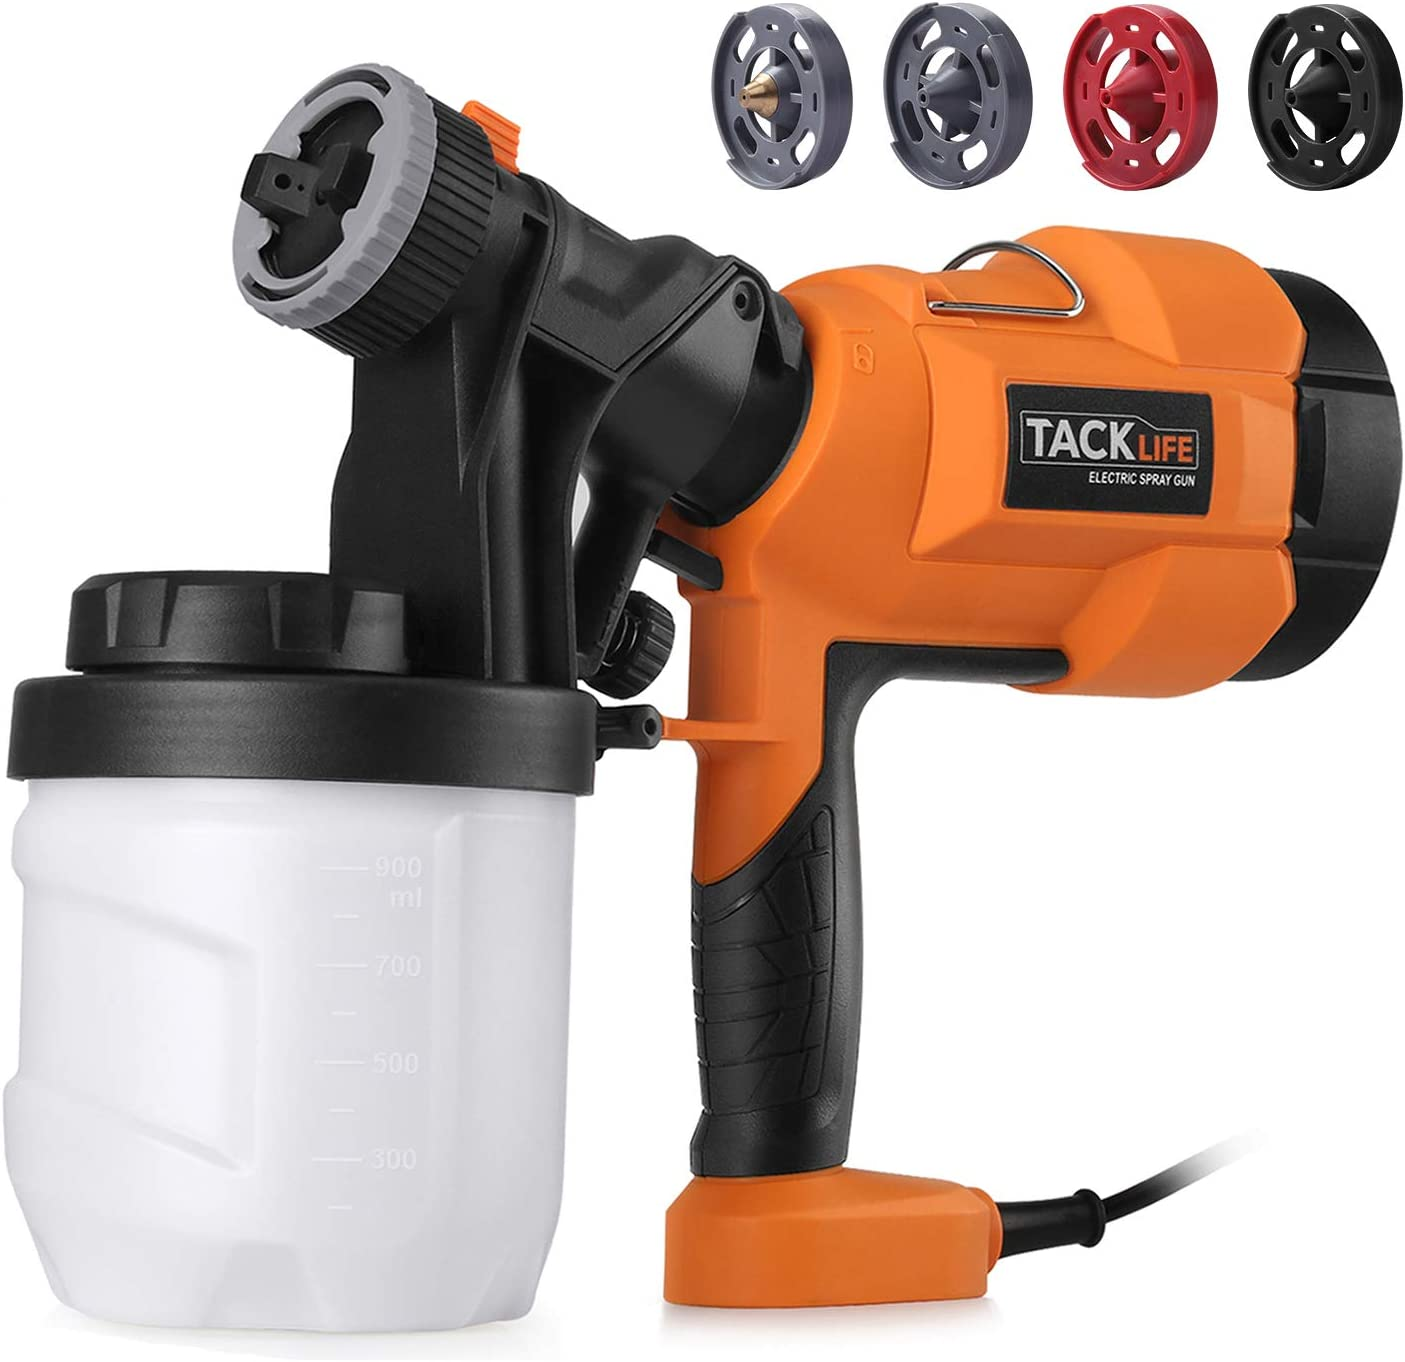 TACKLIFE High Power HVLP Home Electric Paint Sprayer